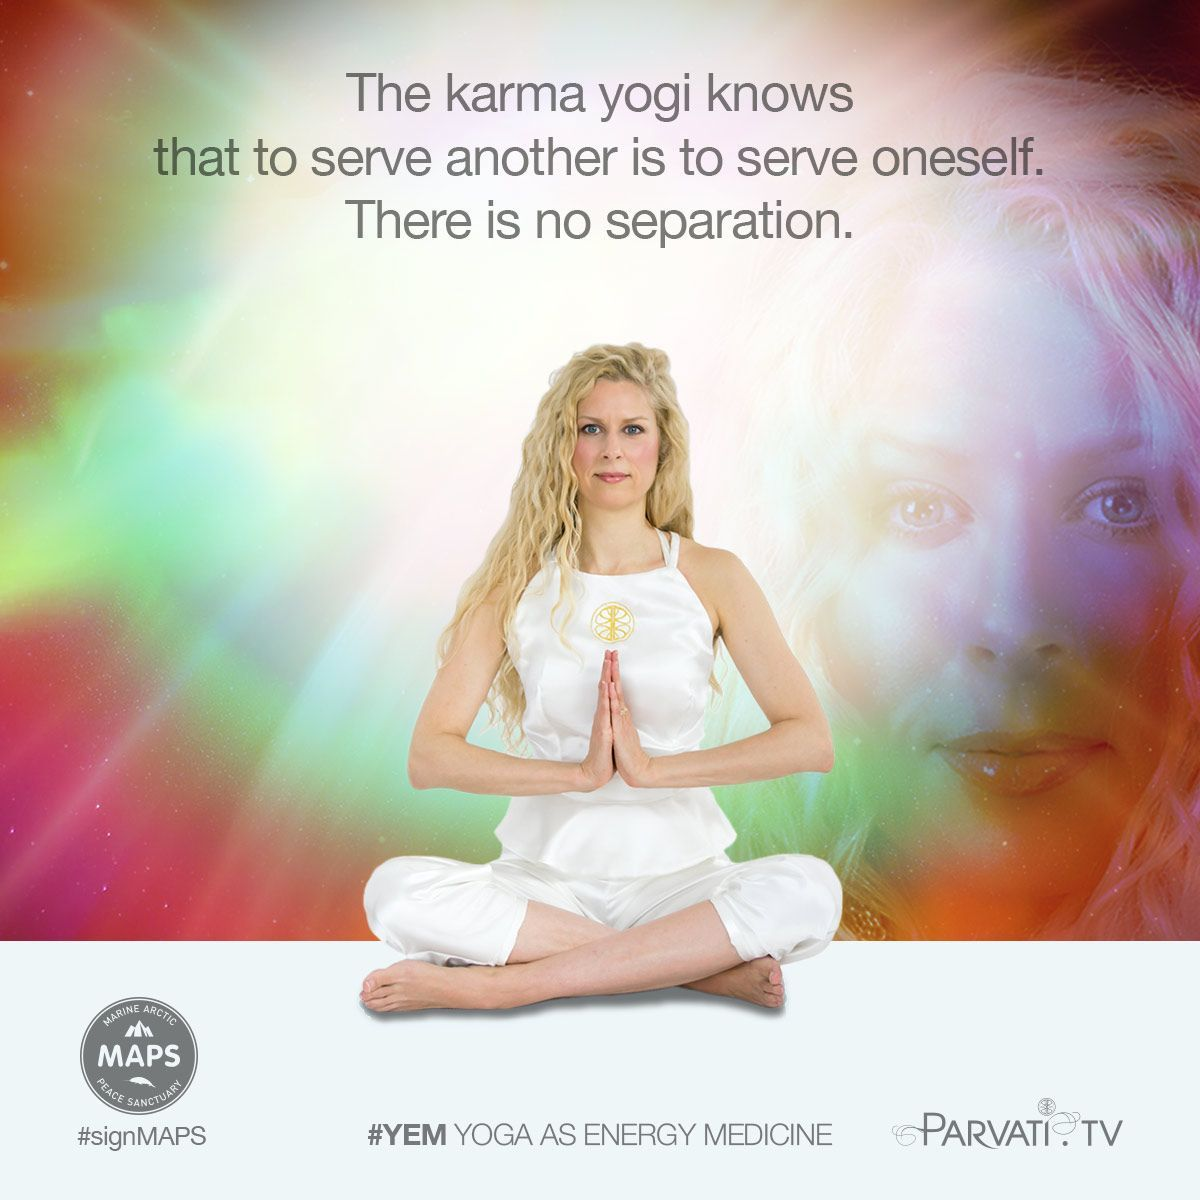 How to Be a Karma Yogi (Religion of Love) recommendations